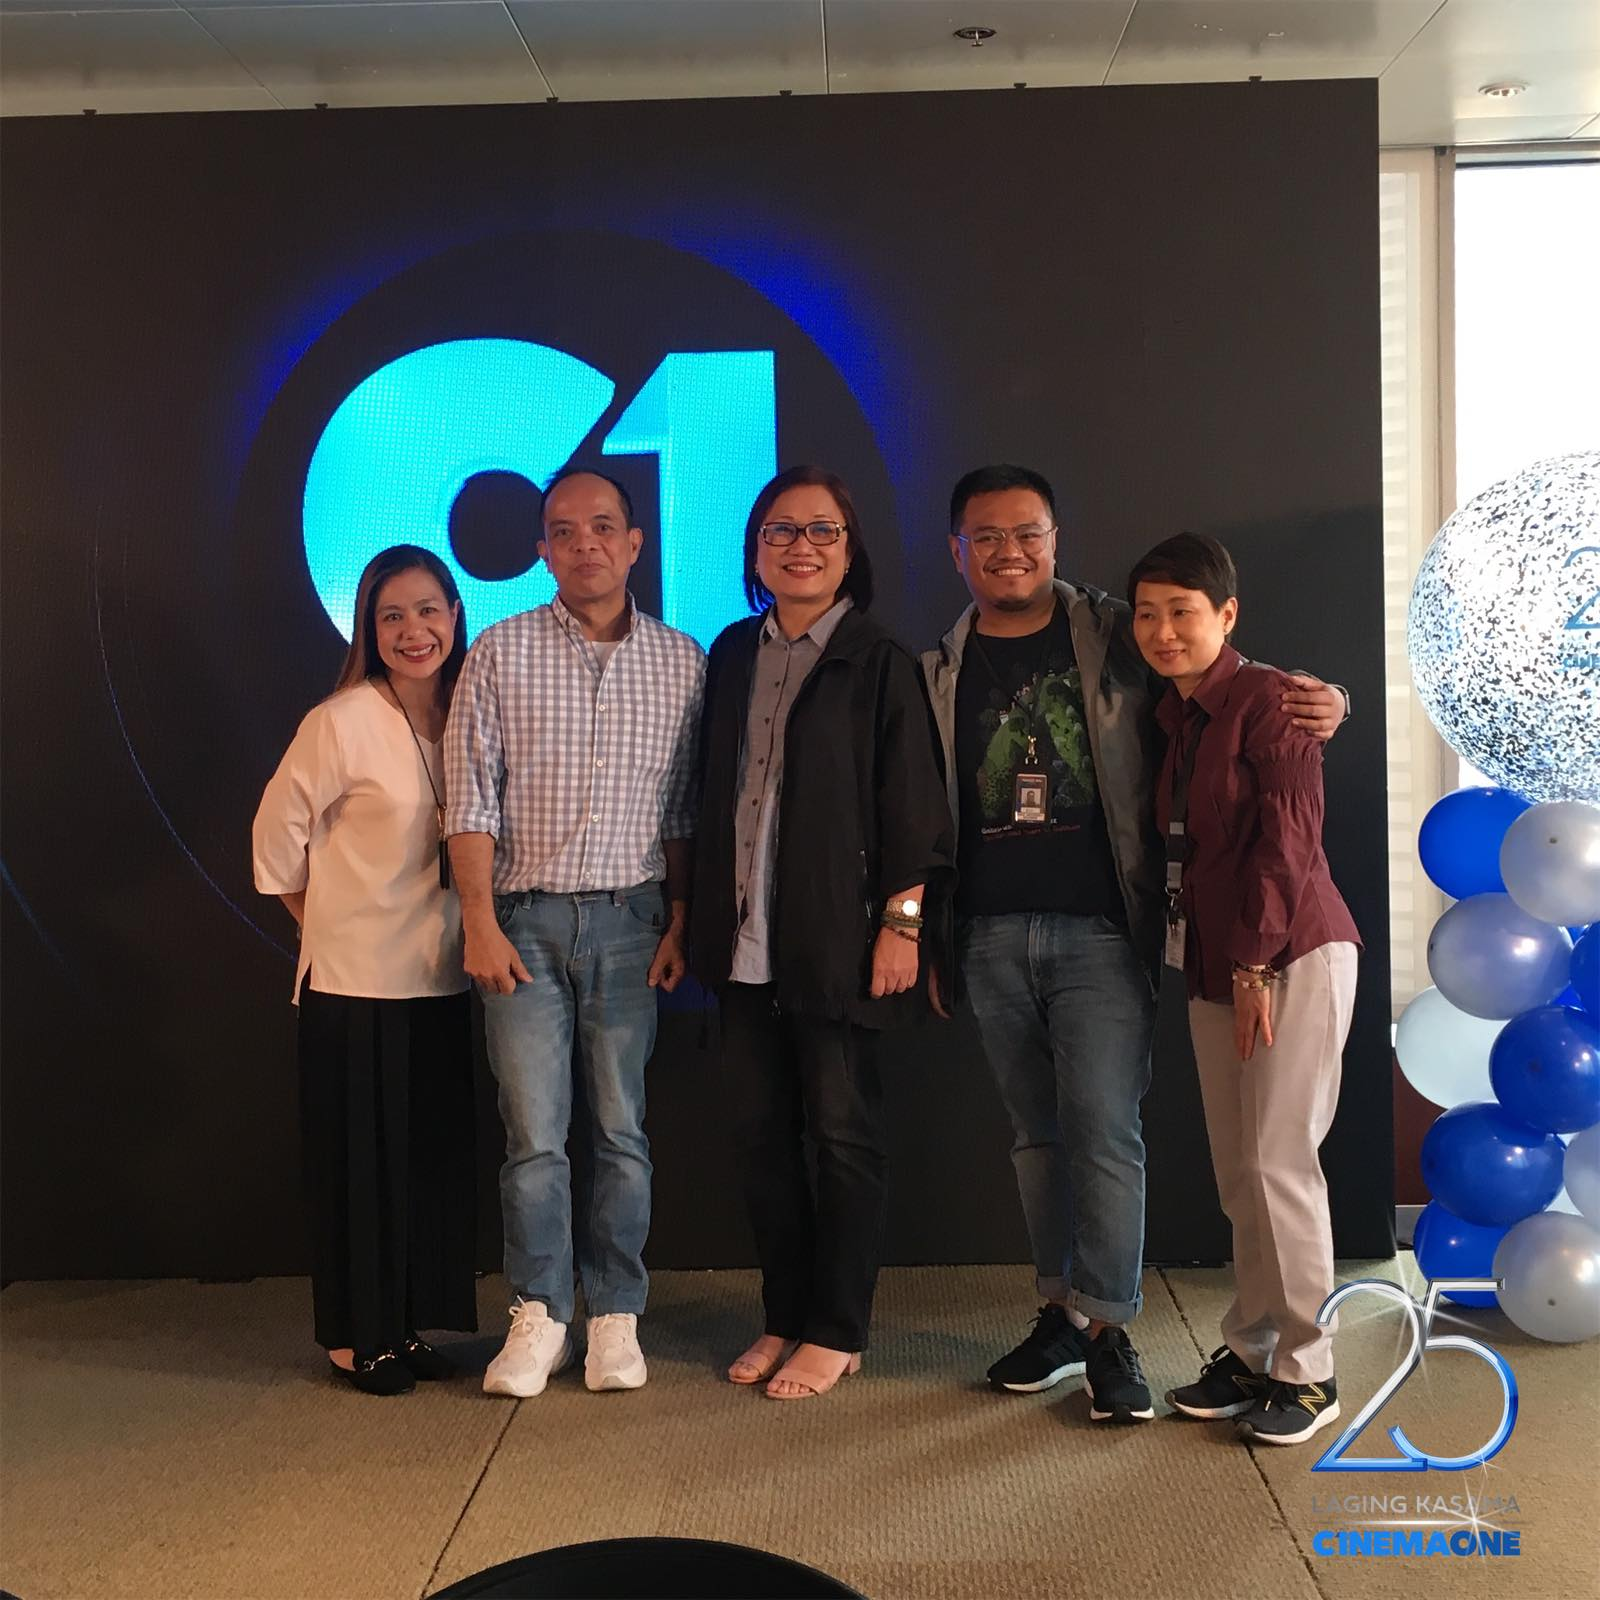 Cinema One channel head Ronald Arguelles with ABS CBN Films head Olivia Lamasan